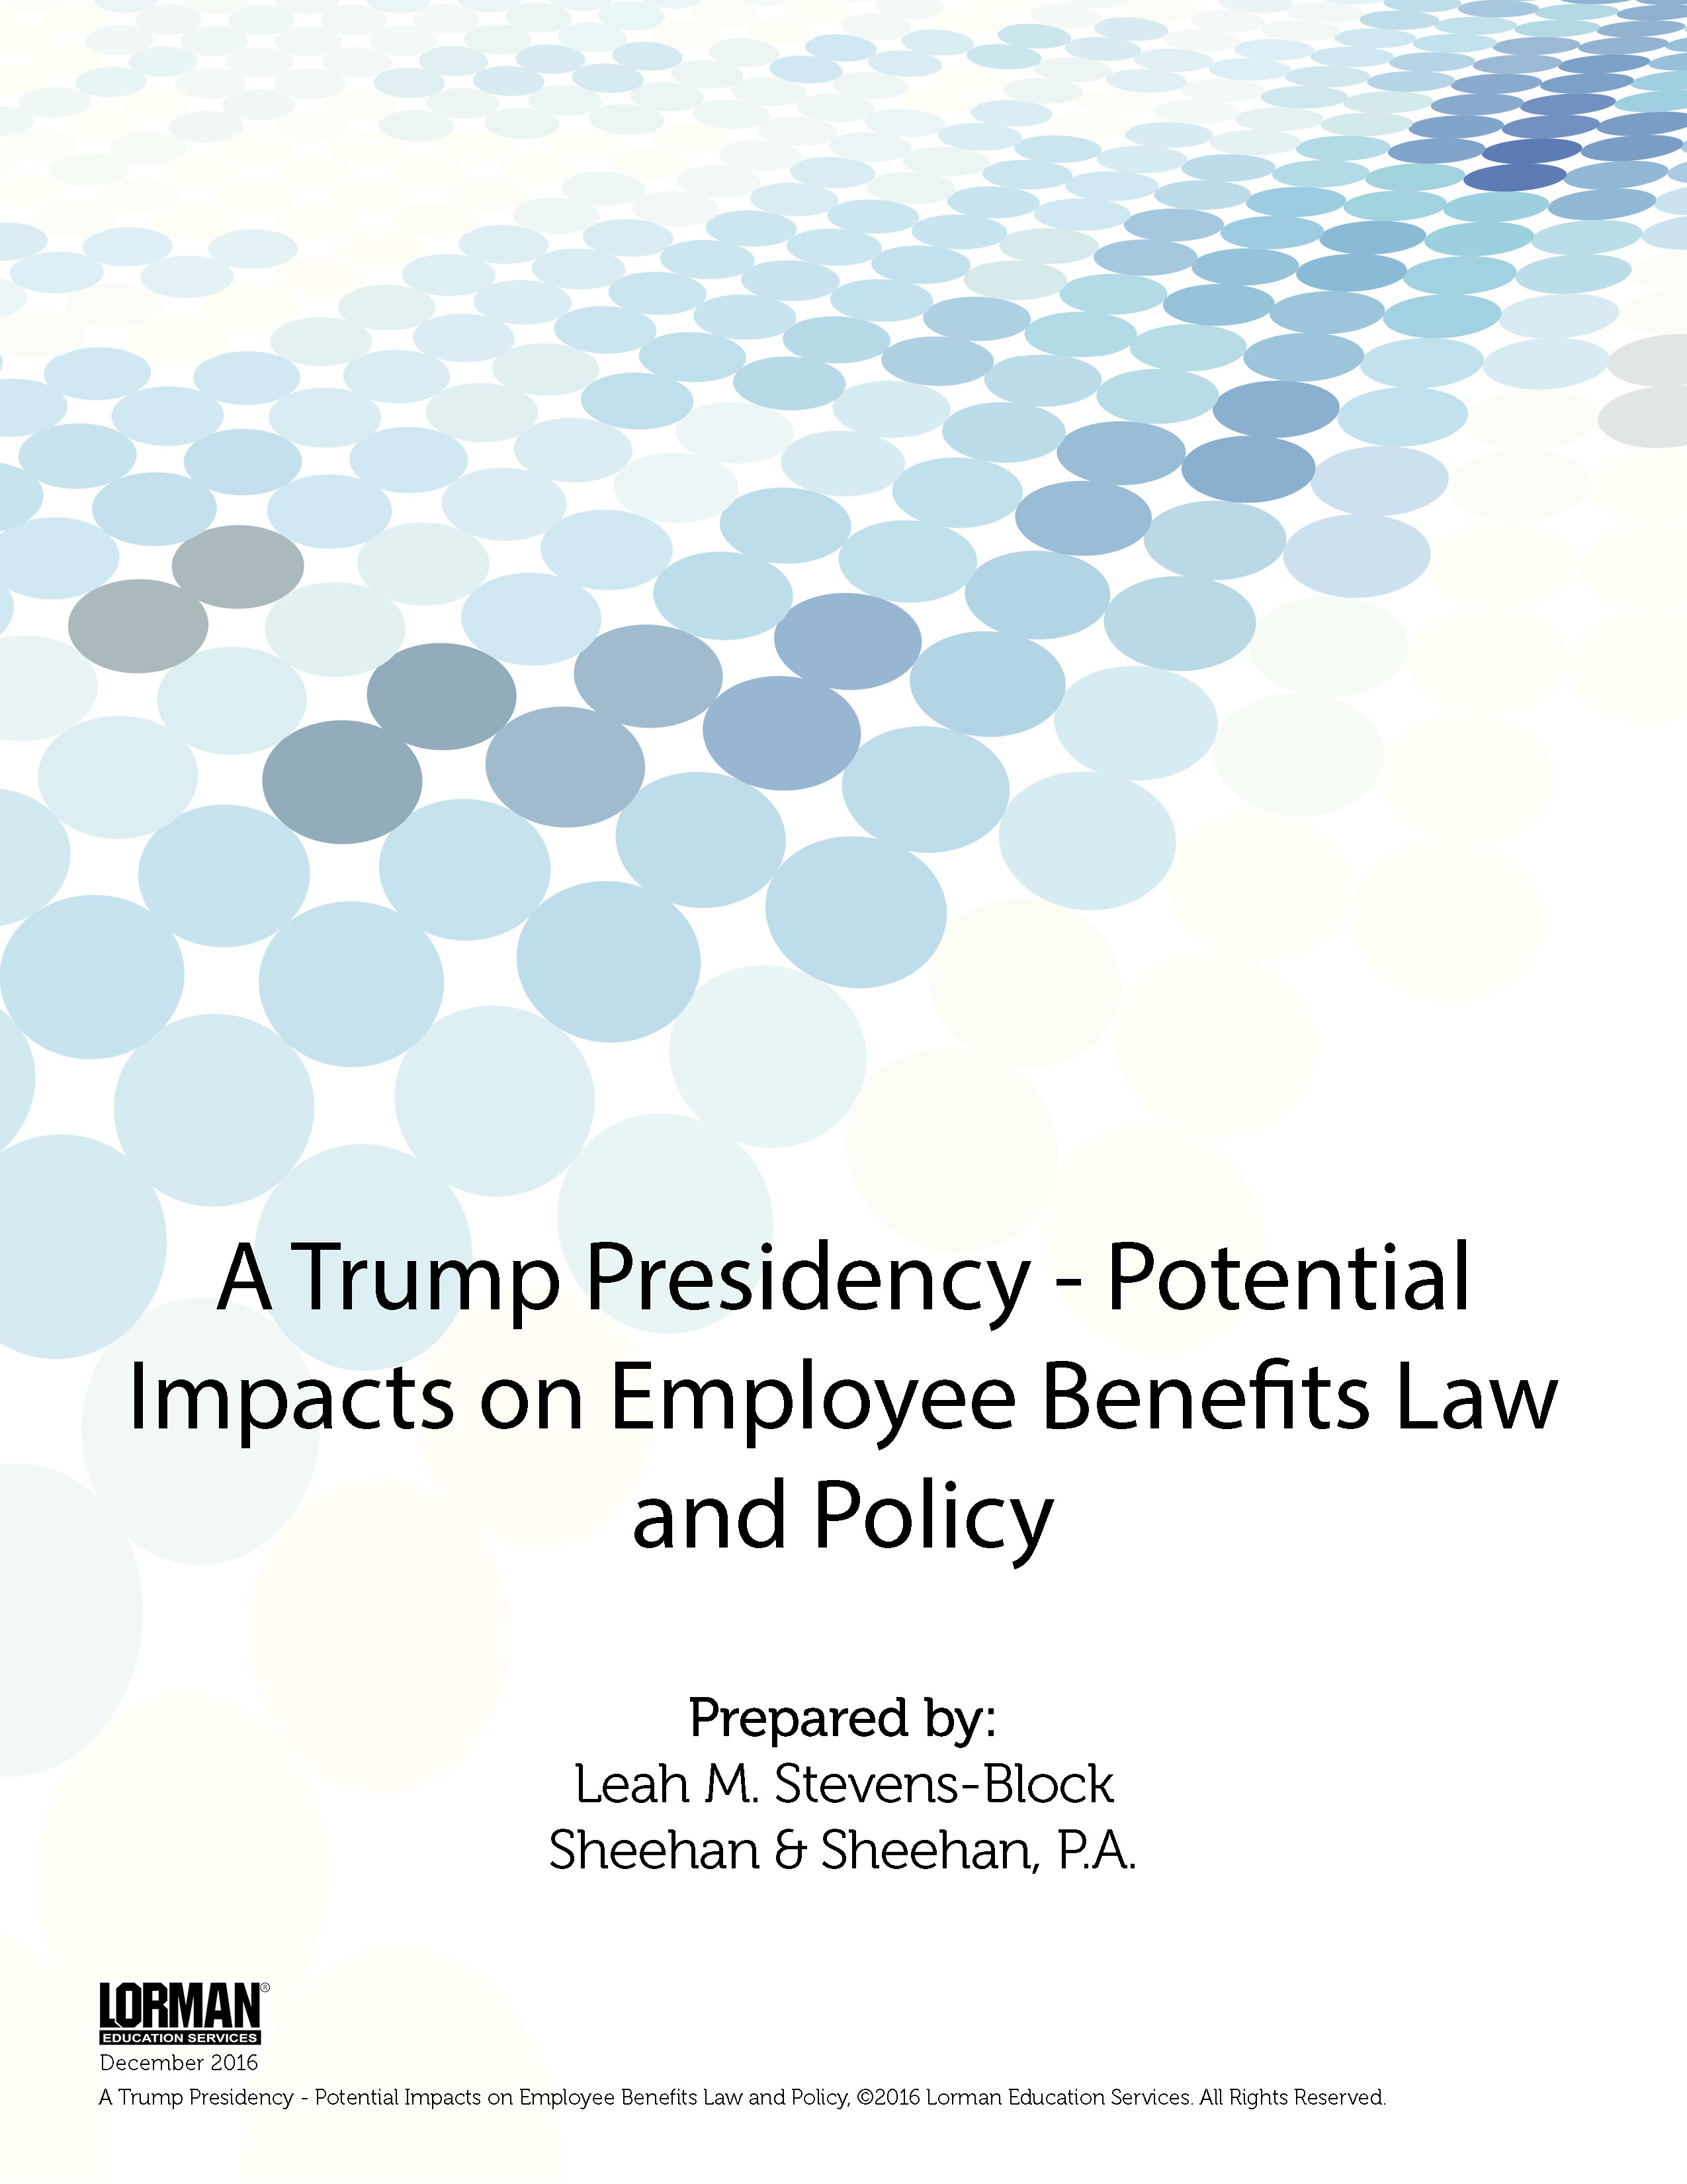 A Trump Presidency - Potential Impacts on Employee Benefits Law and Policy